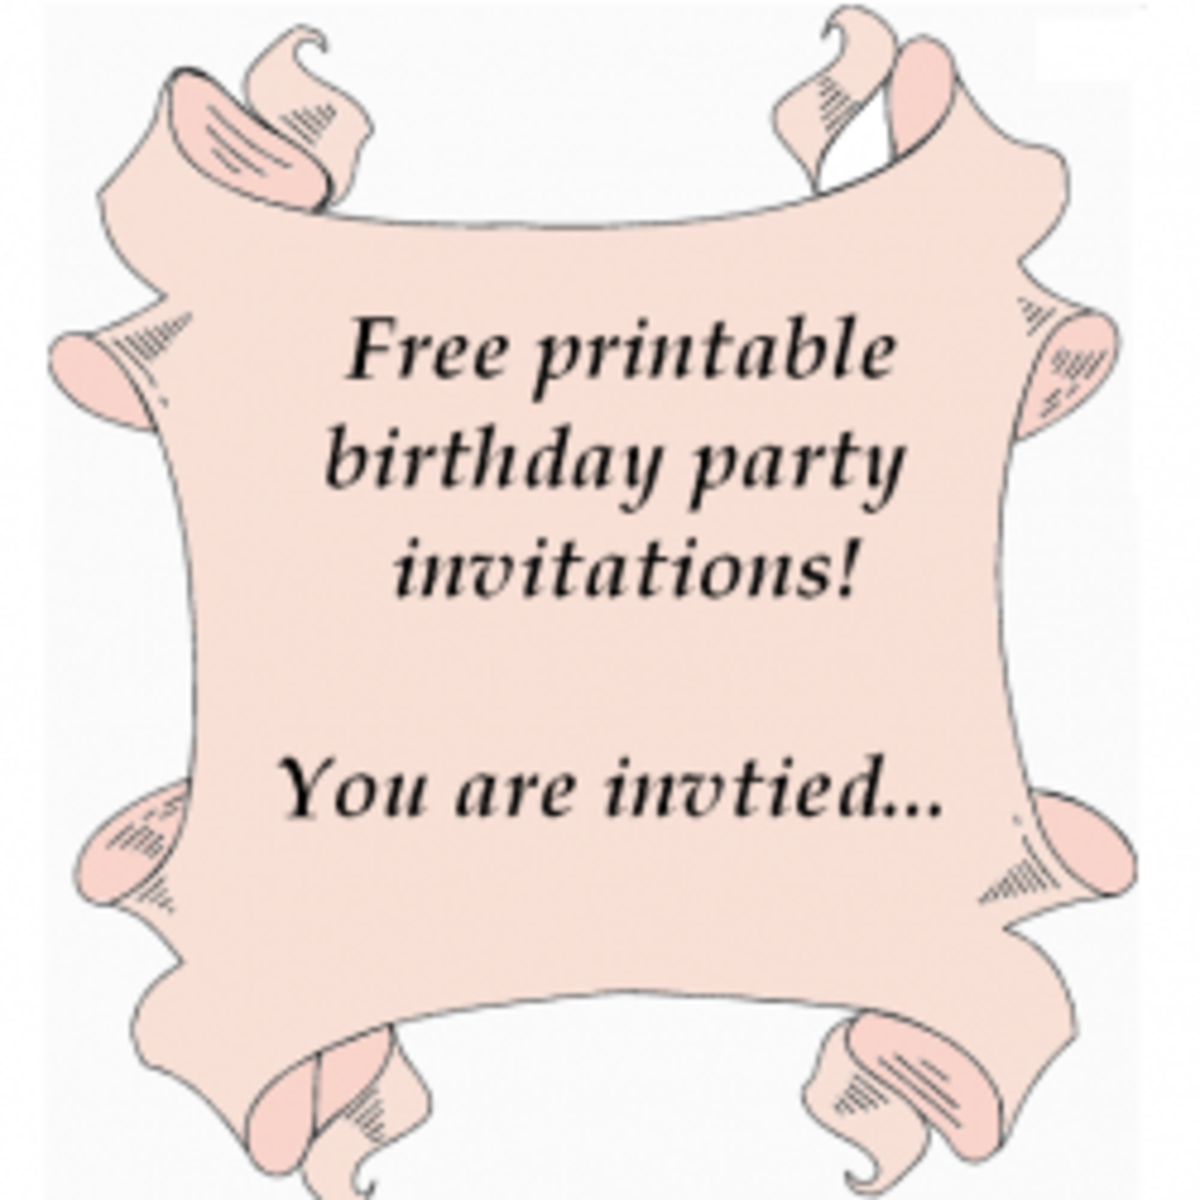 Free printable birthday party invitations templates hubpages free printable birthday party invitations templates filmwisefo Images